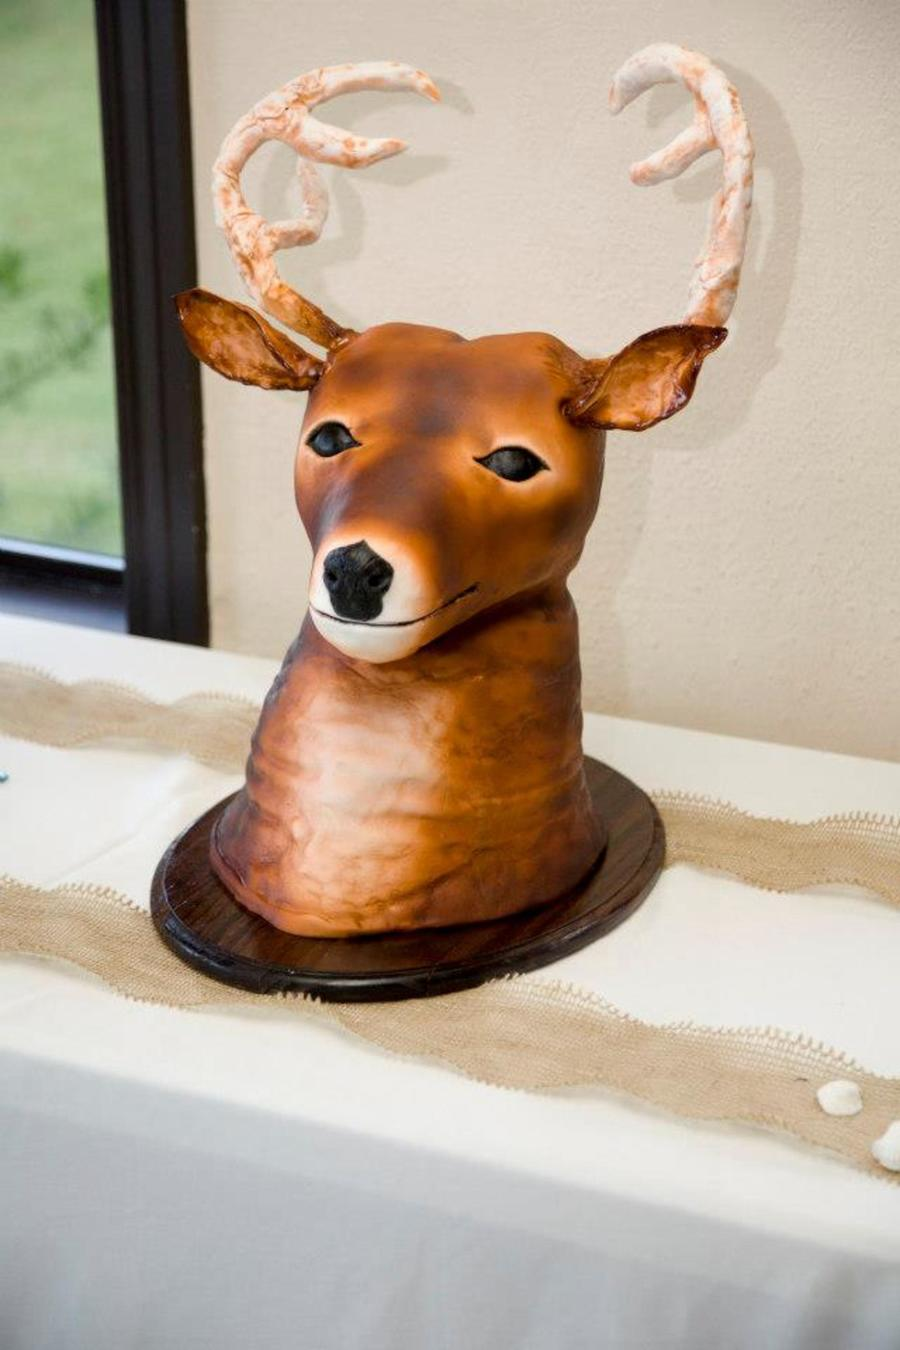 Mounted Deer Head Grooms Cake Base Of The Cake Is Red Velvet And Head Is Rice Cereal Treats Covered In Mmf Ears And Antlers Are Gumpast on Cake Central